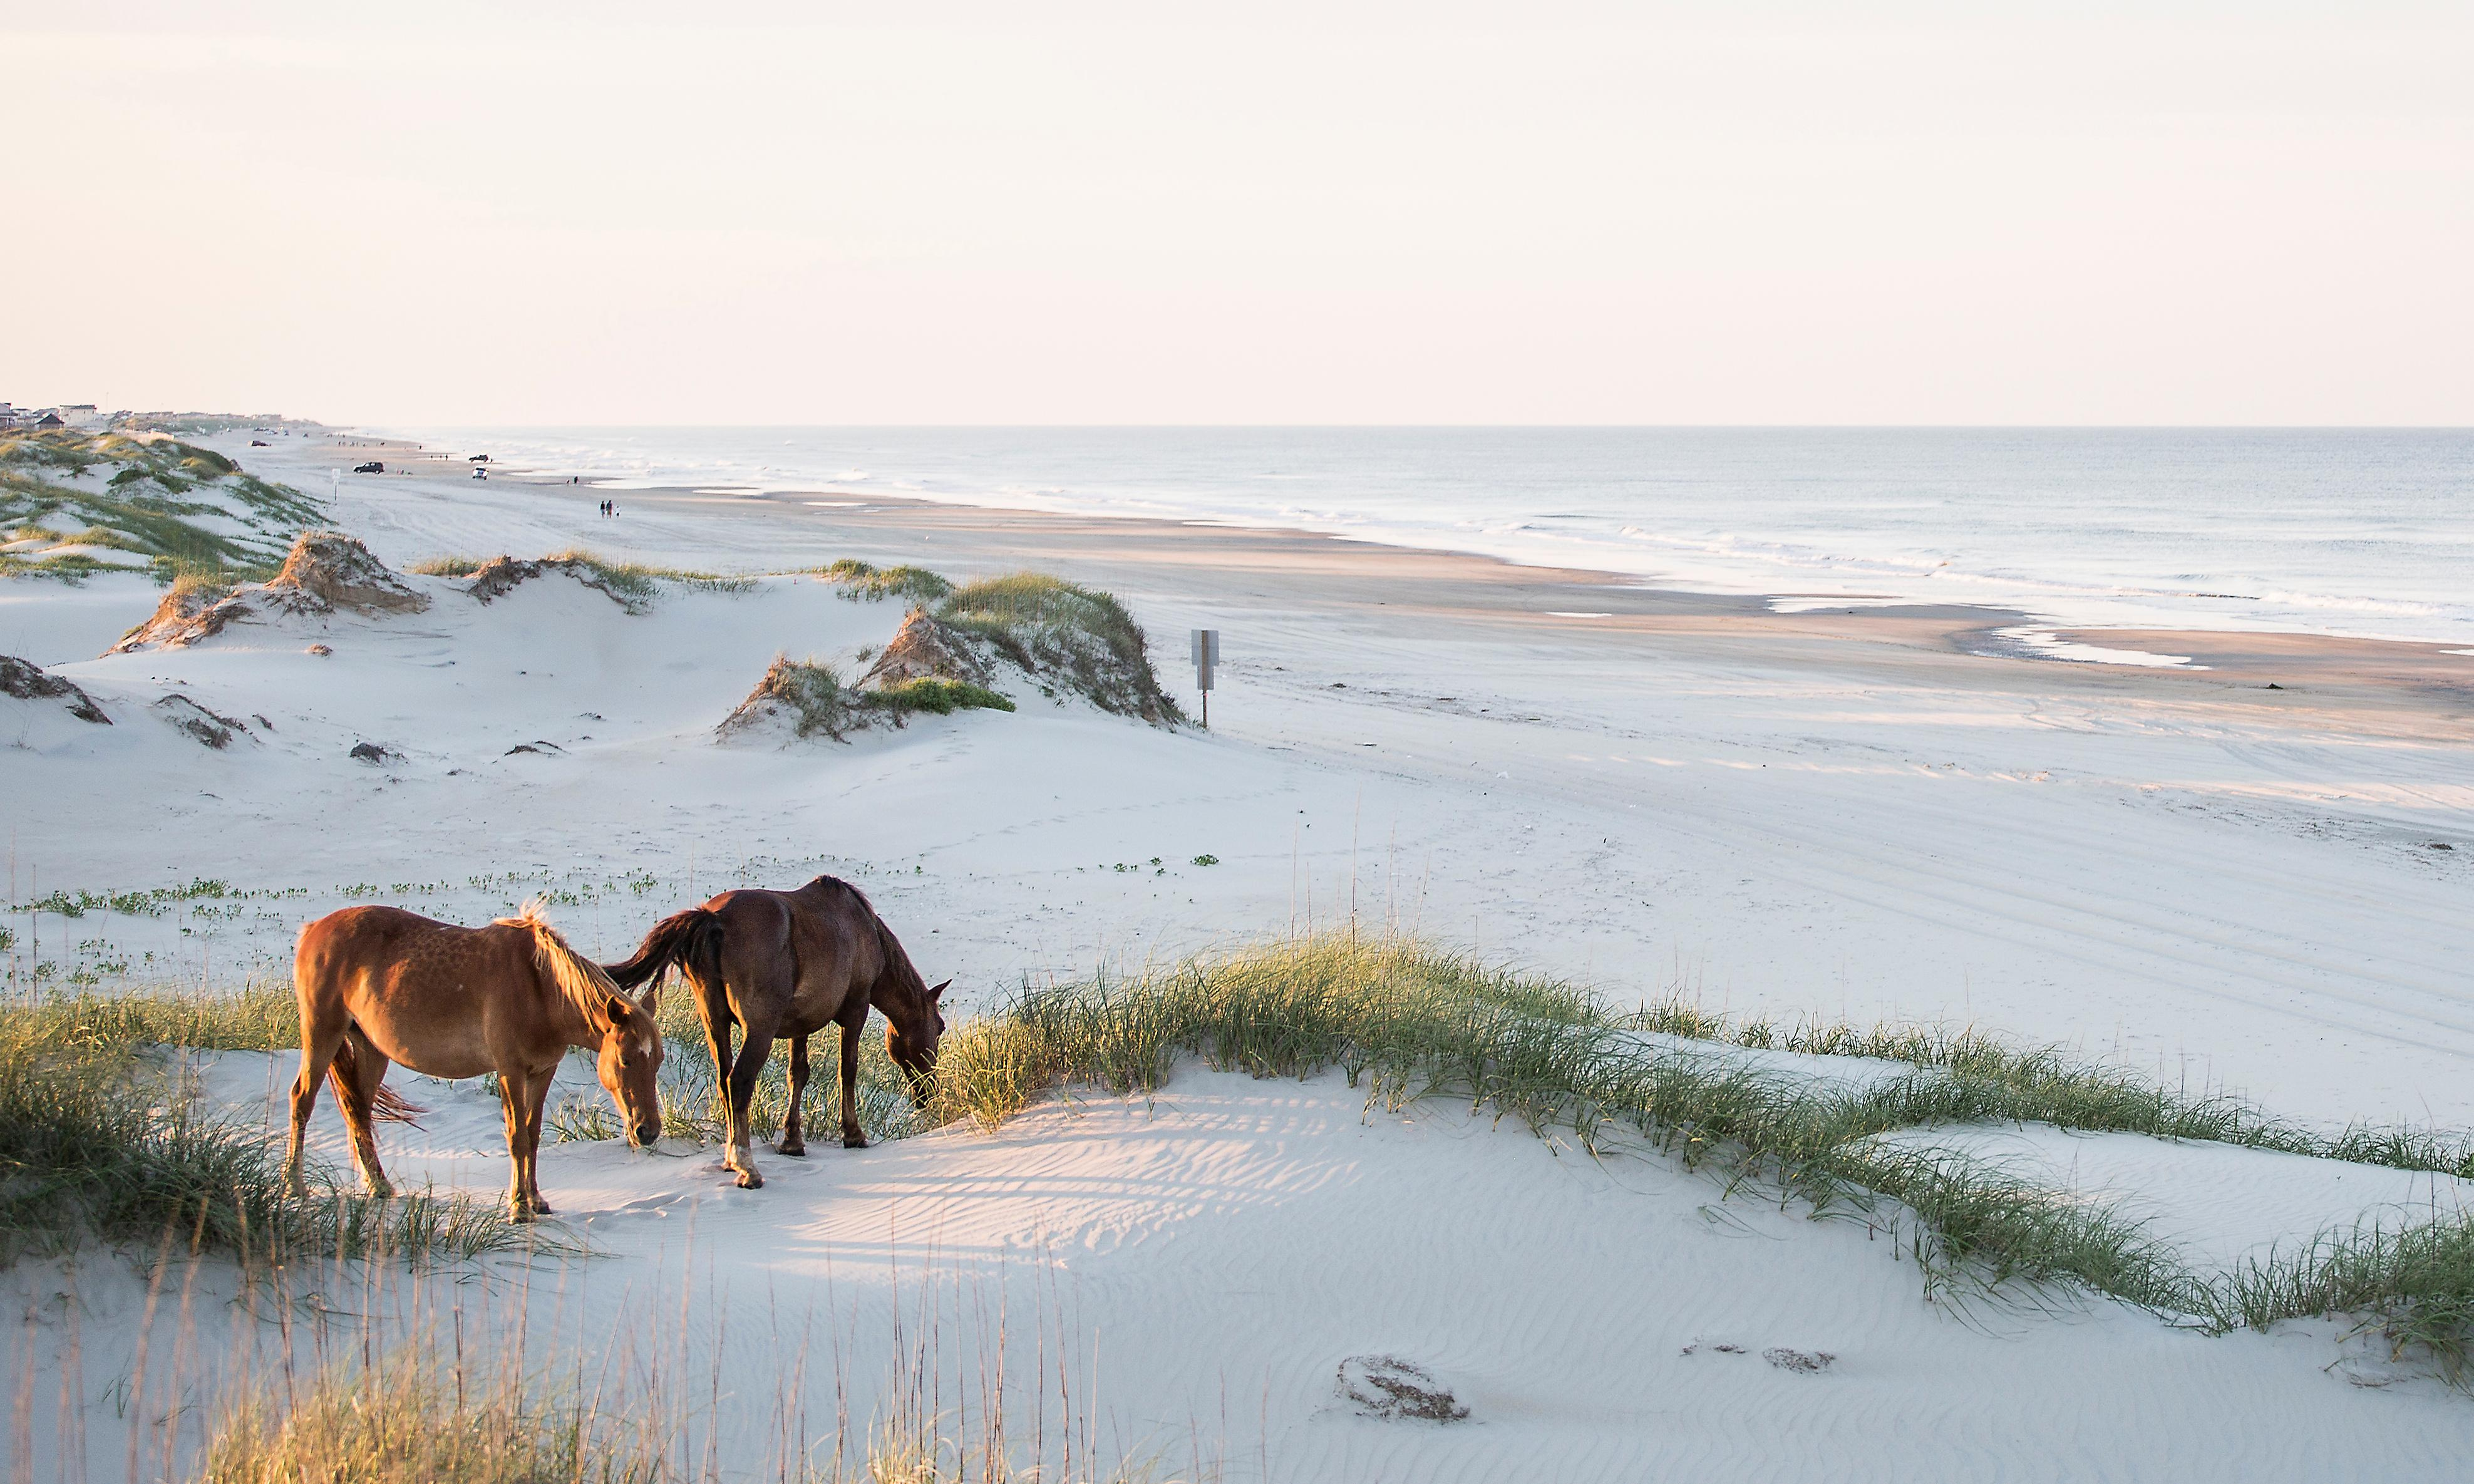 North Carolina's islands: the beauty of the Outer Banks